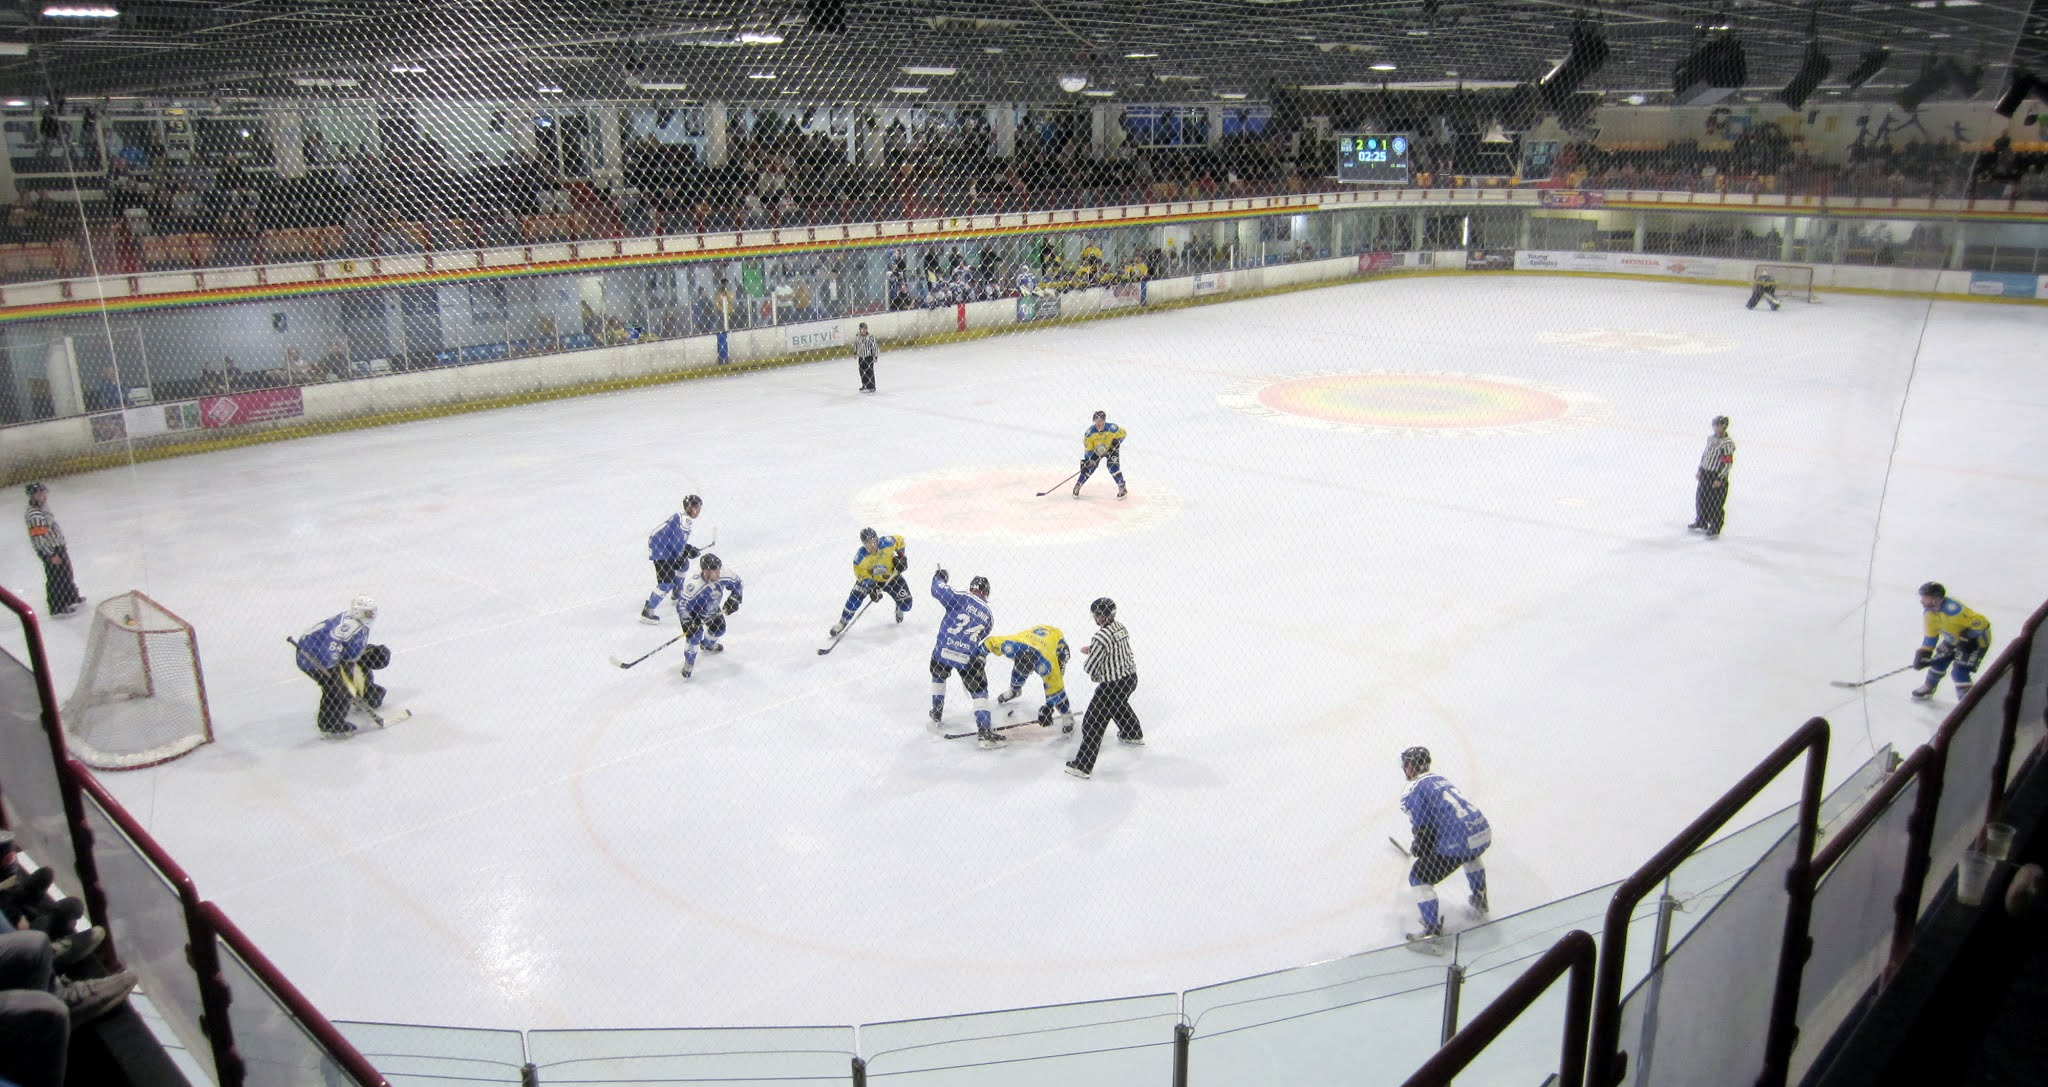 Behind the netting at Bracknell Ice Rink